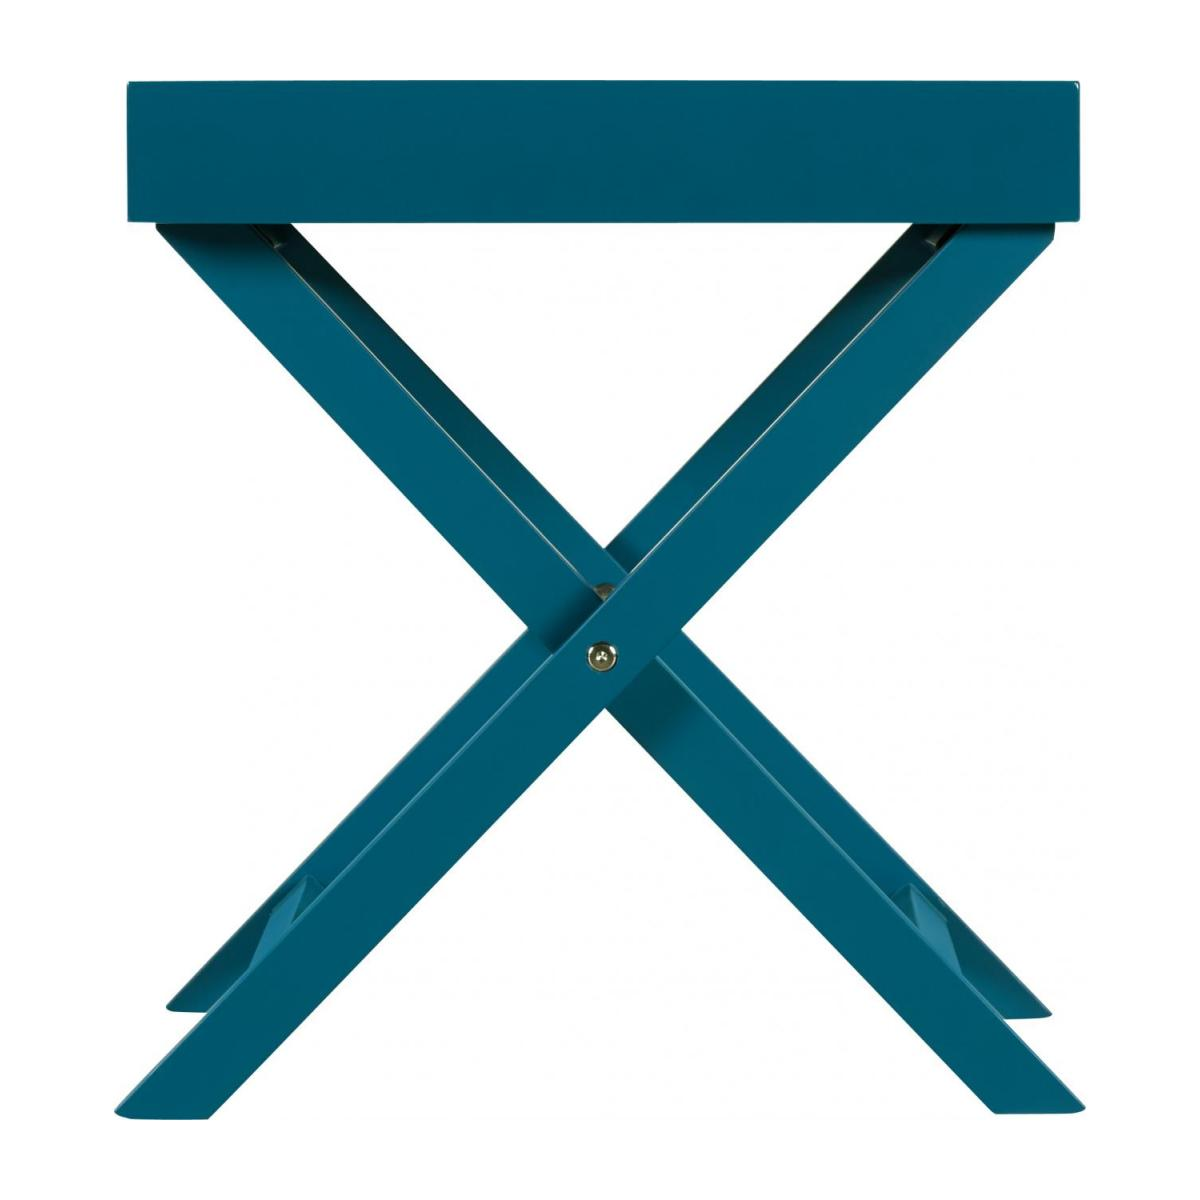 Table d'appoint - Bleu n°3